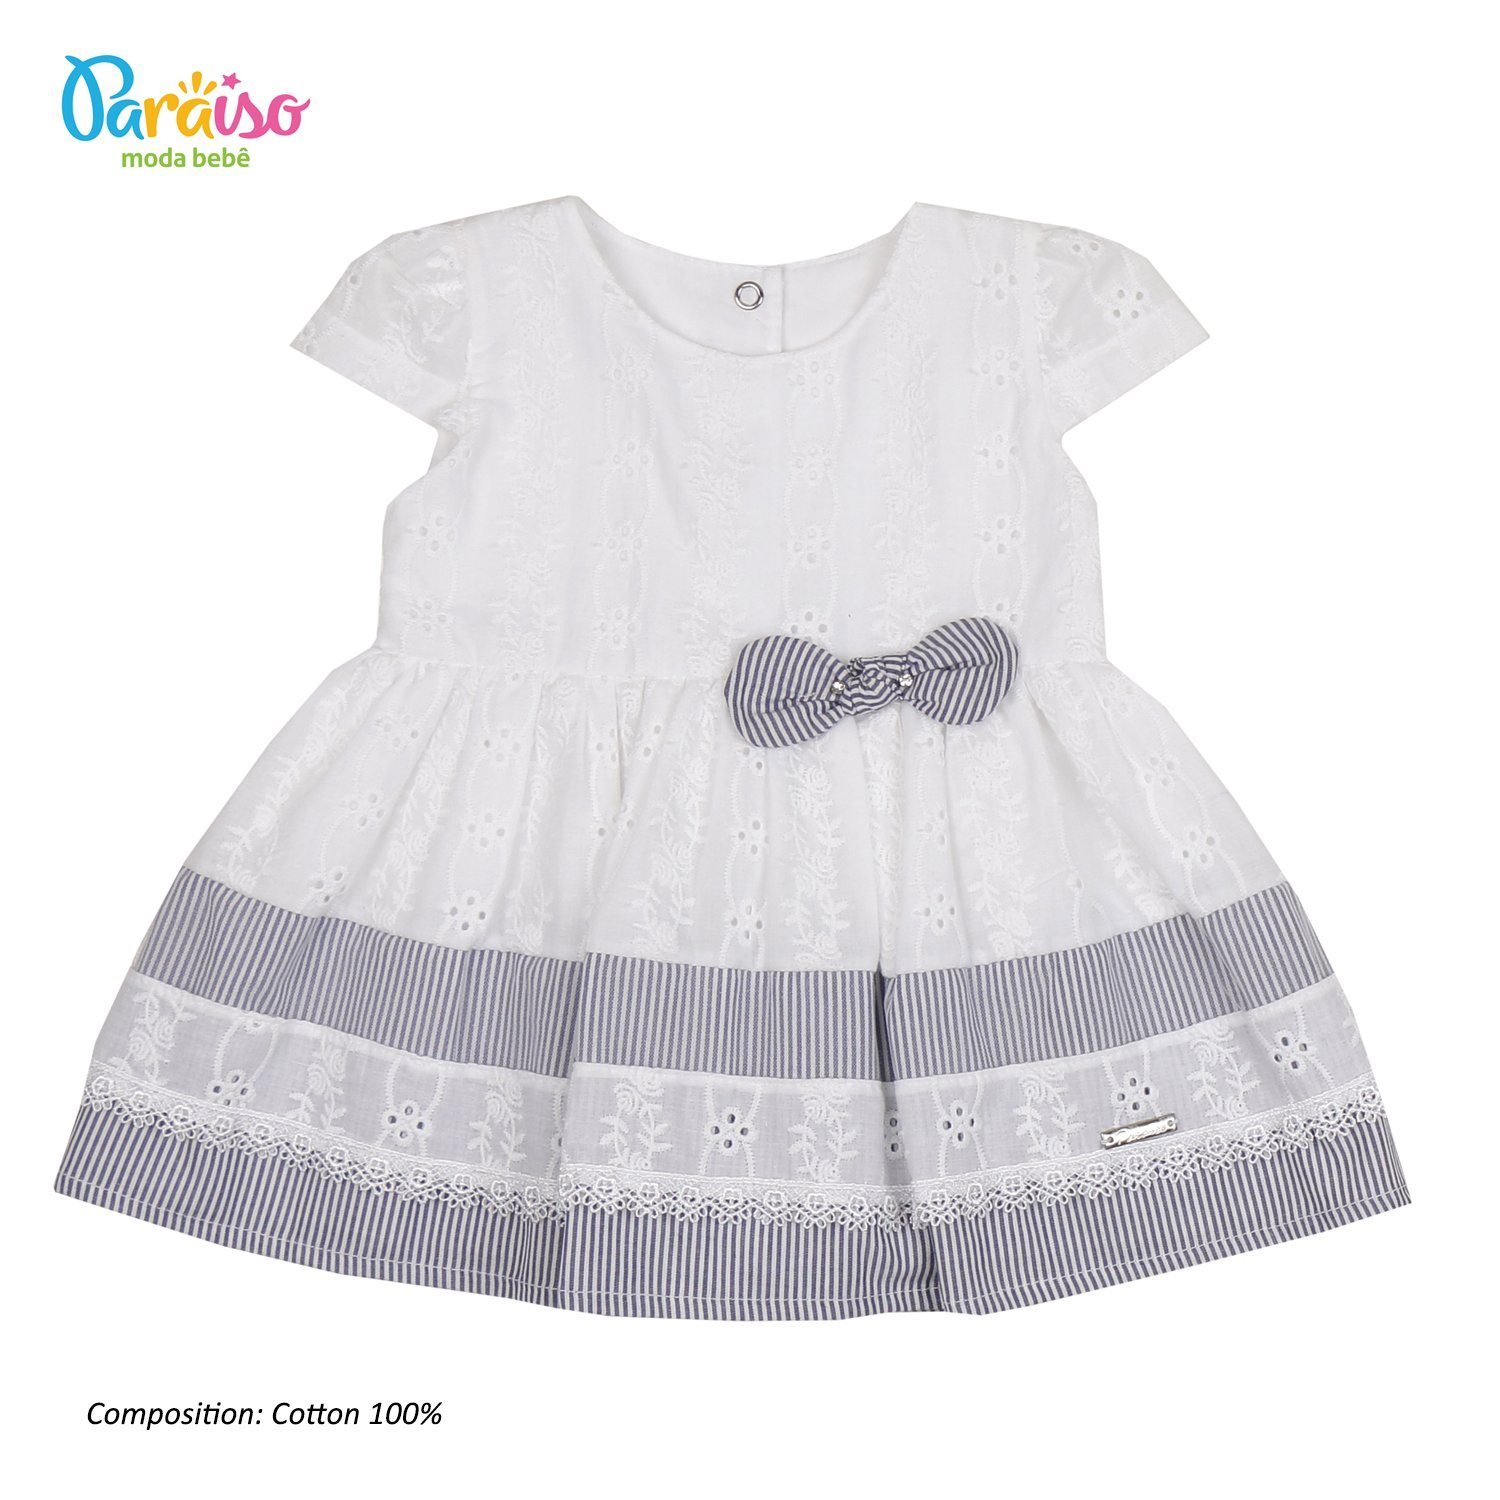 Paraiso DRESS B076GVBZYV ベビーガールズ 1-3 Months Months ネイビーブルー DRESS B076GVBZYV, ANiSIE:c5a21f77 --- sharoshka.org